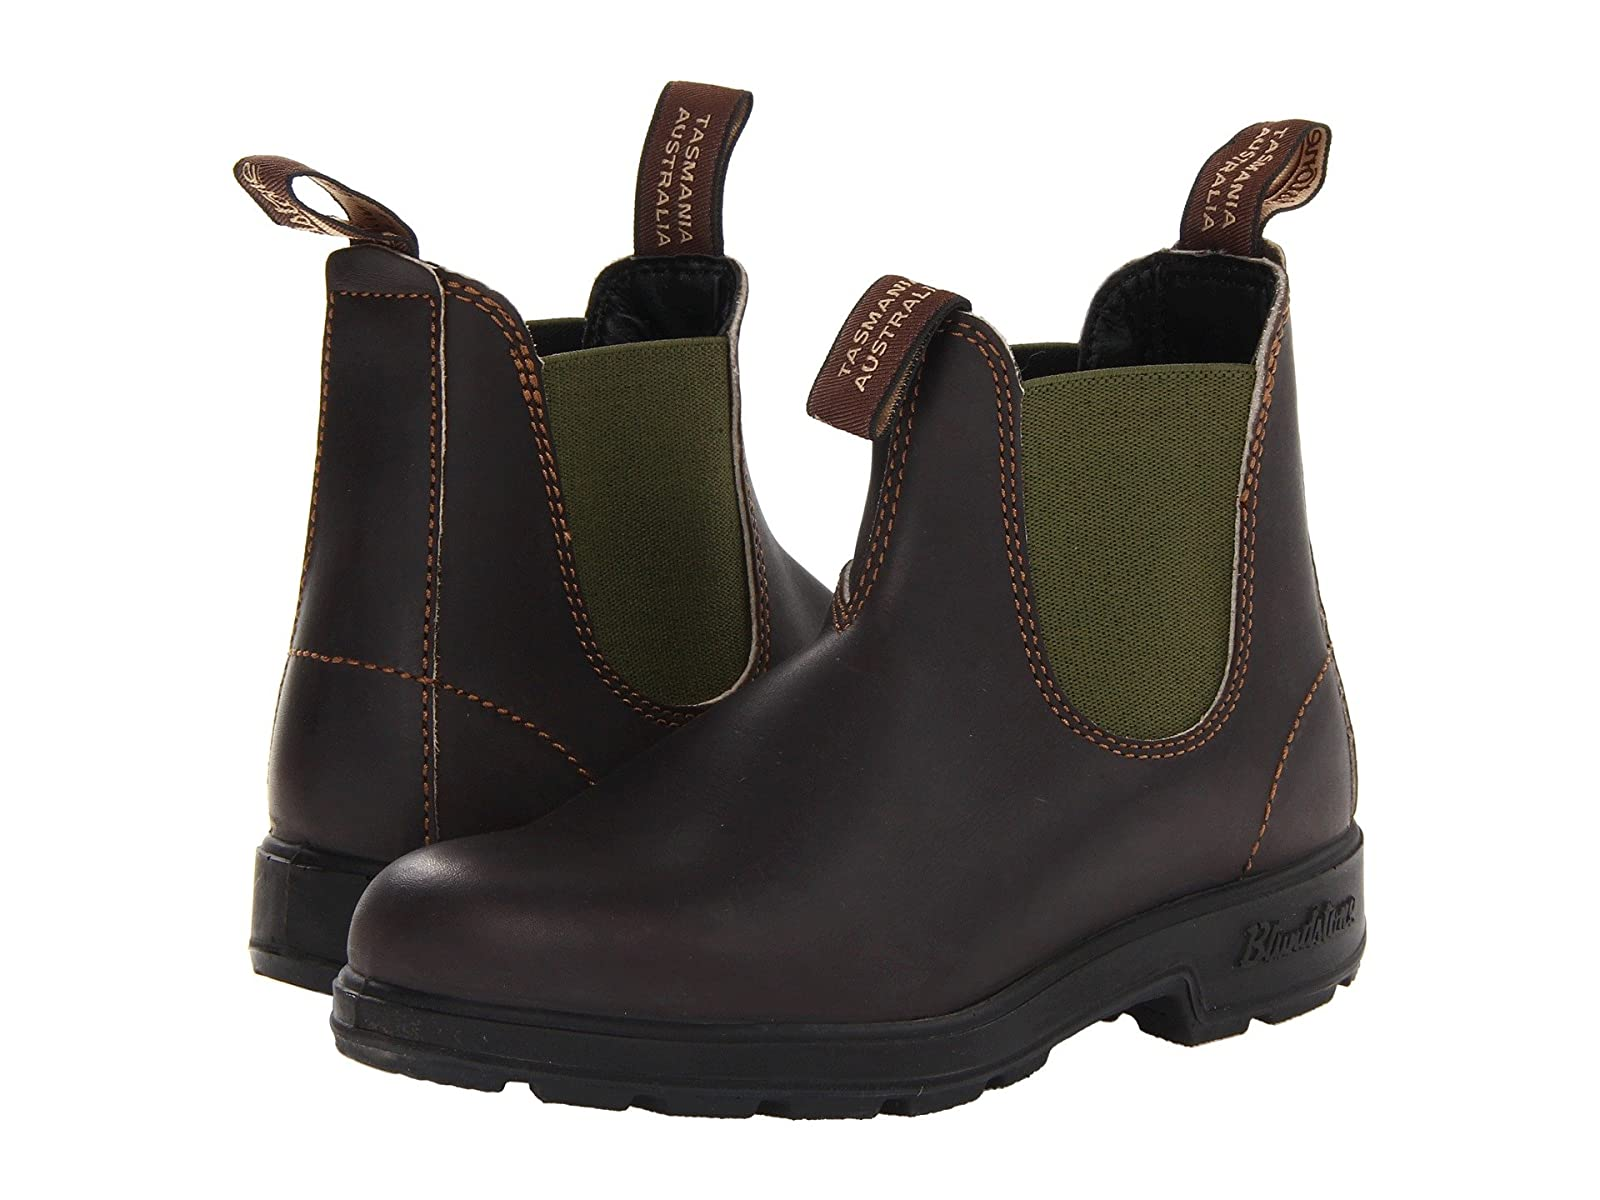 Blundstone BL519Selling fashionable and eye-catching shoes